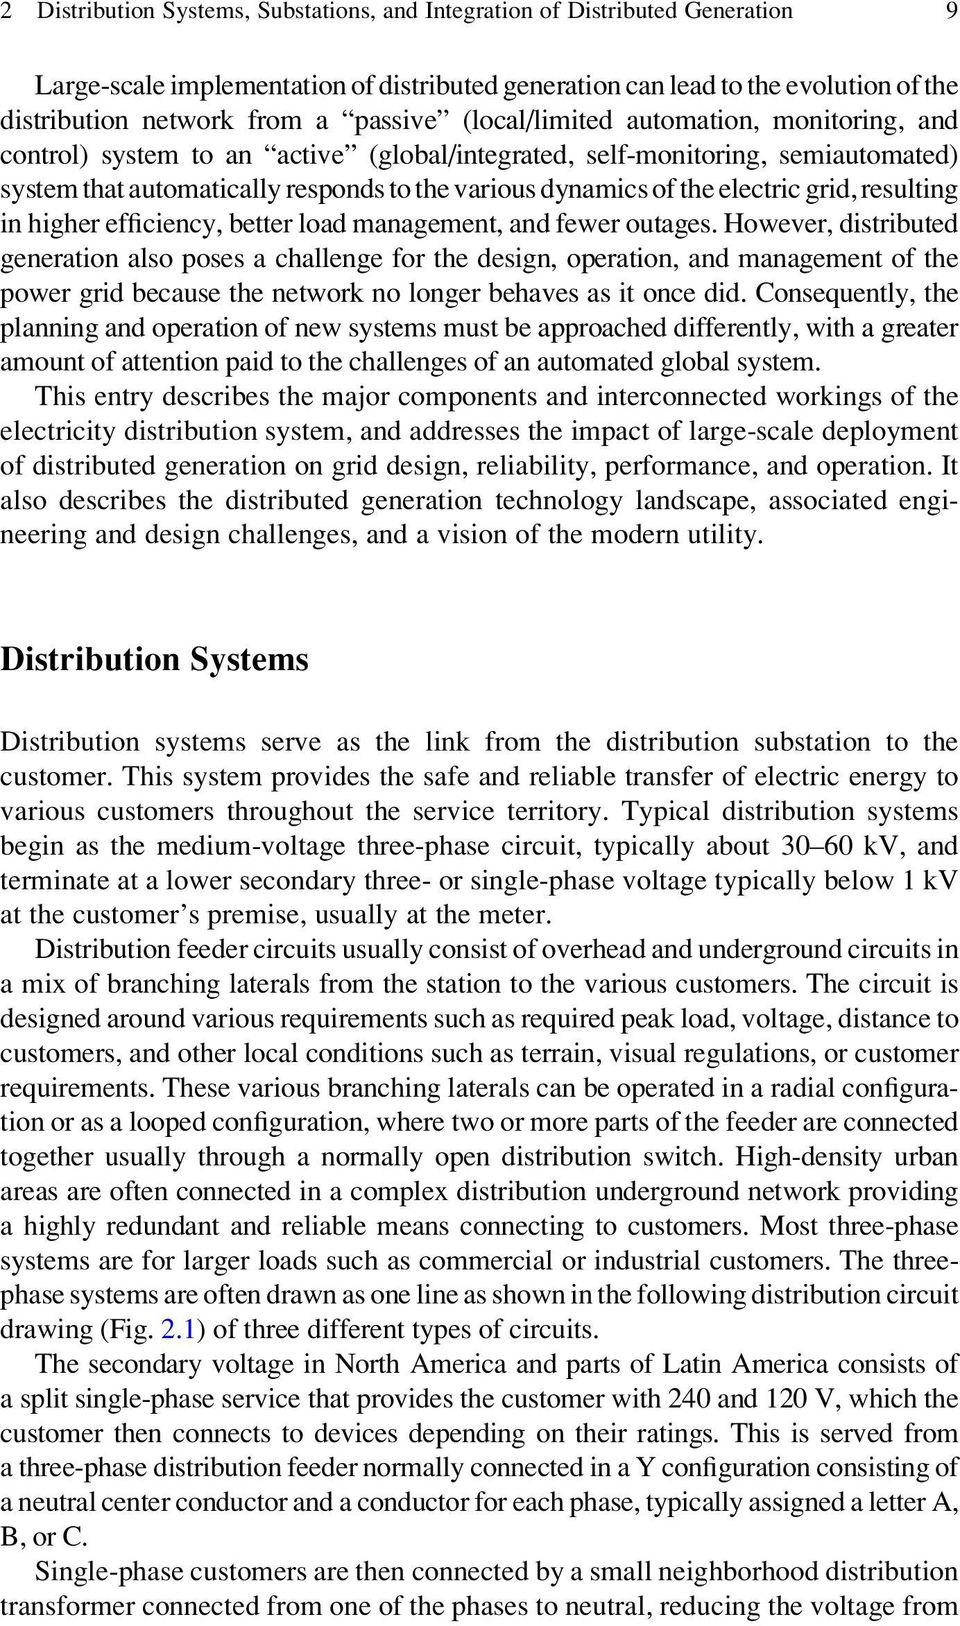 Distribution Substation And Integration Of Distributed Generation Pdf Free Download